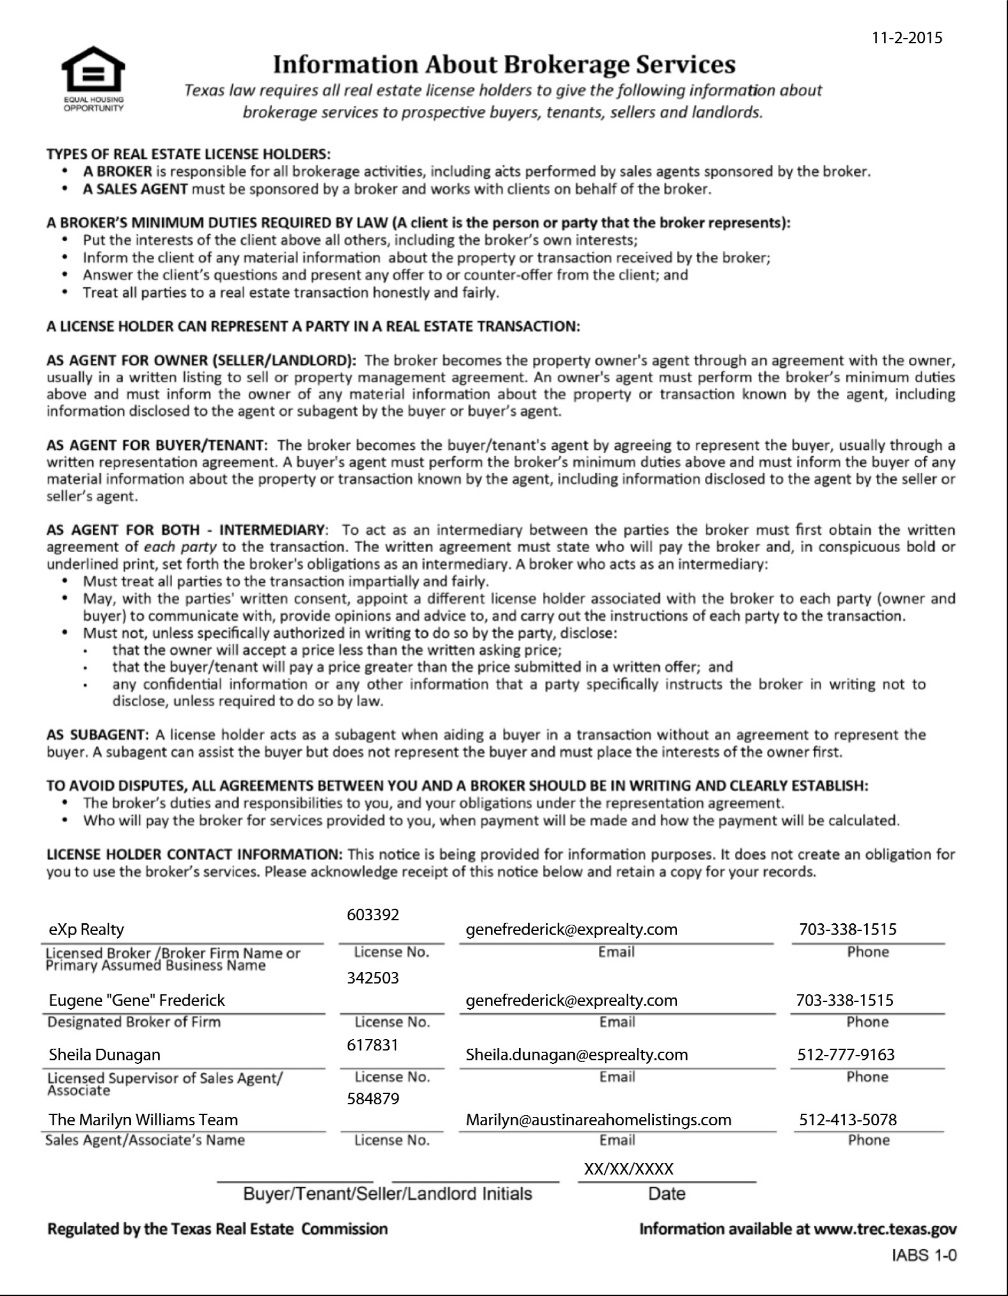 Marilyn Texas Real Estate Commission (TREC) Information About Brokerage Services Form